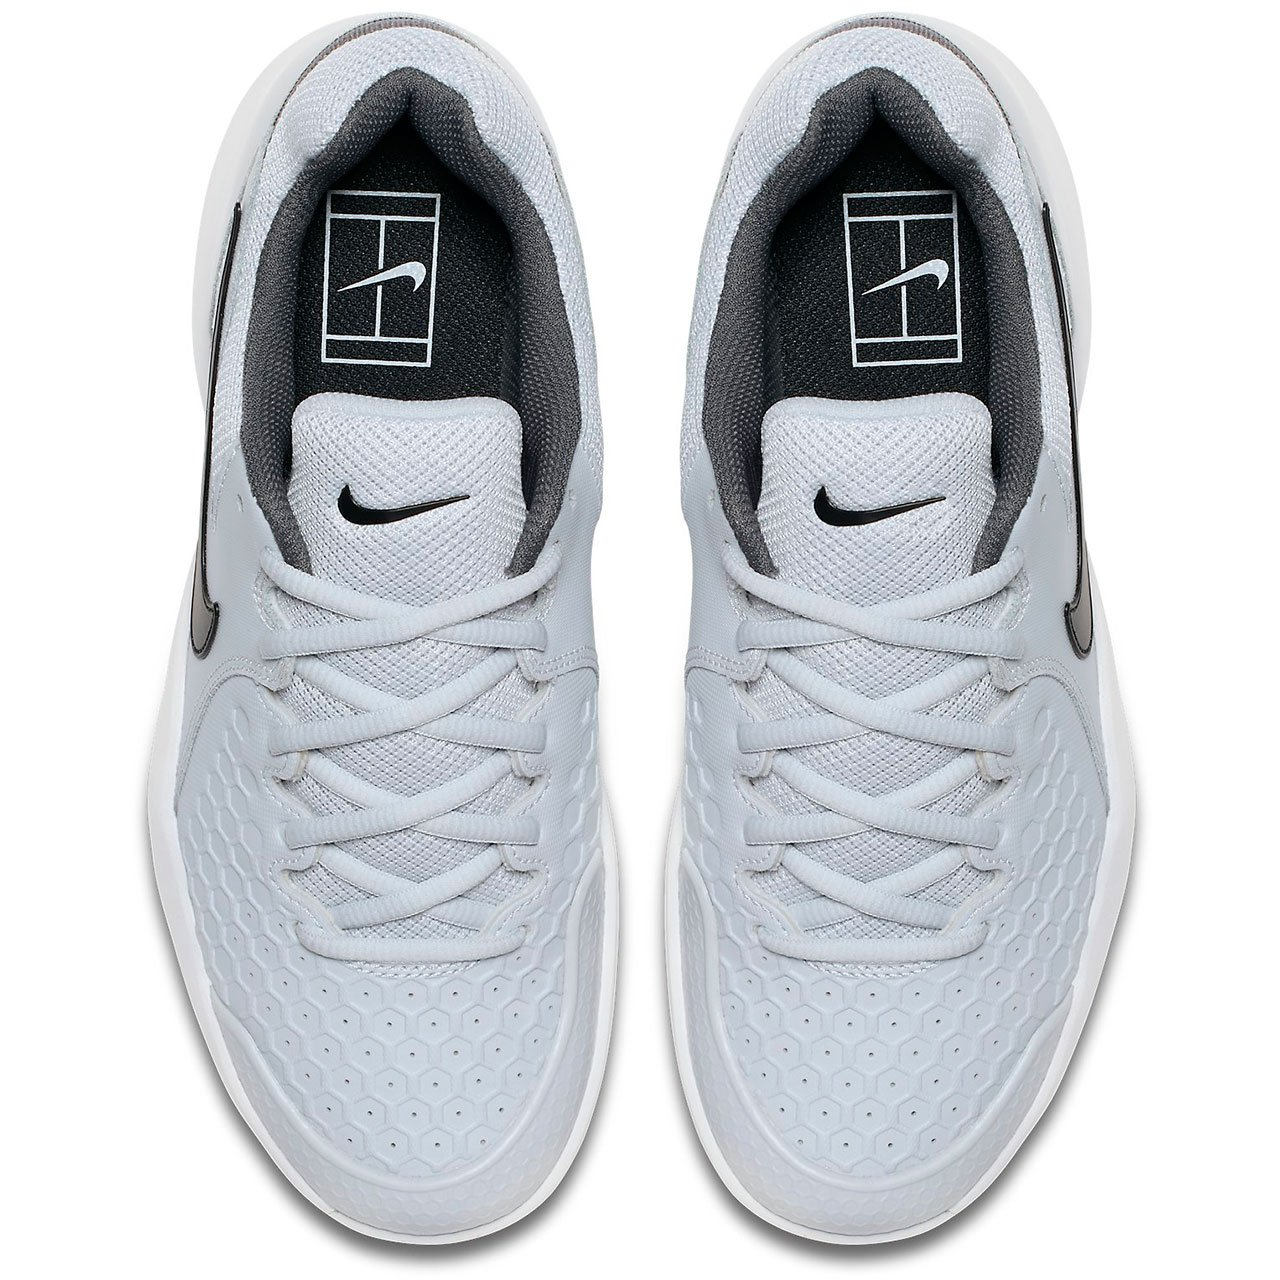 Air Zoom Resistance Tennis Shoes